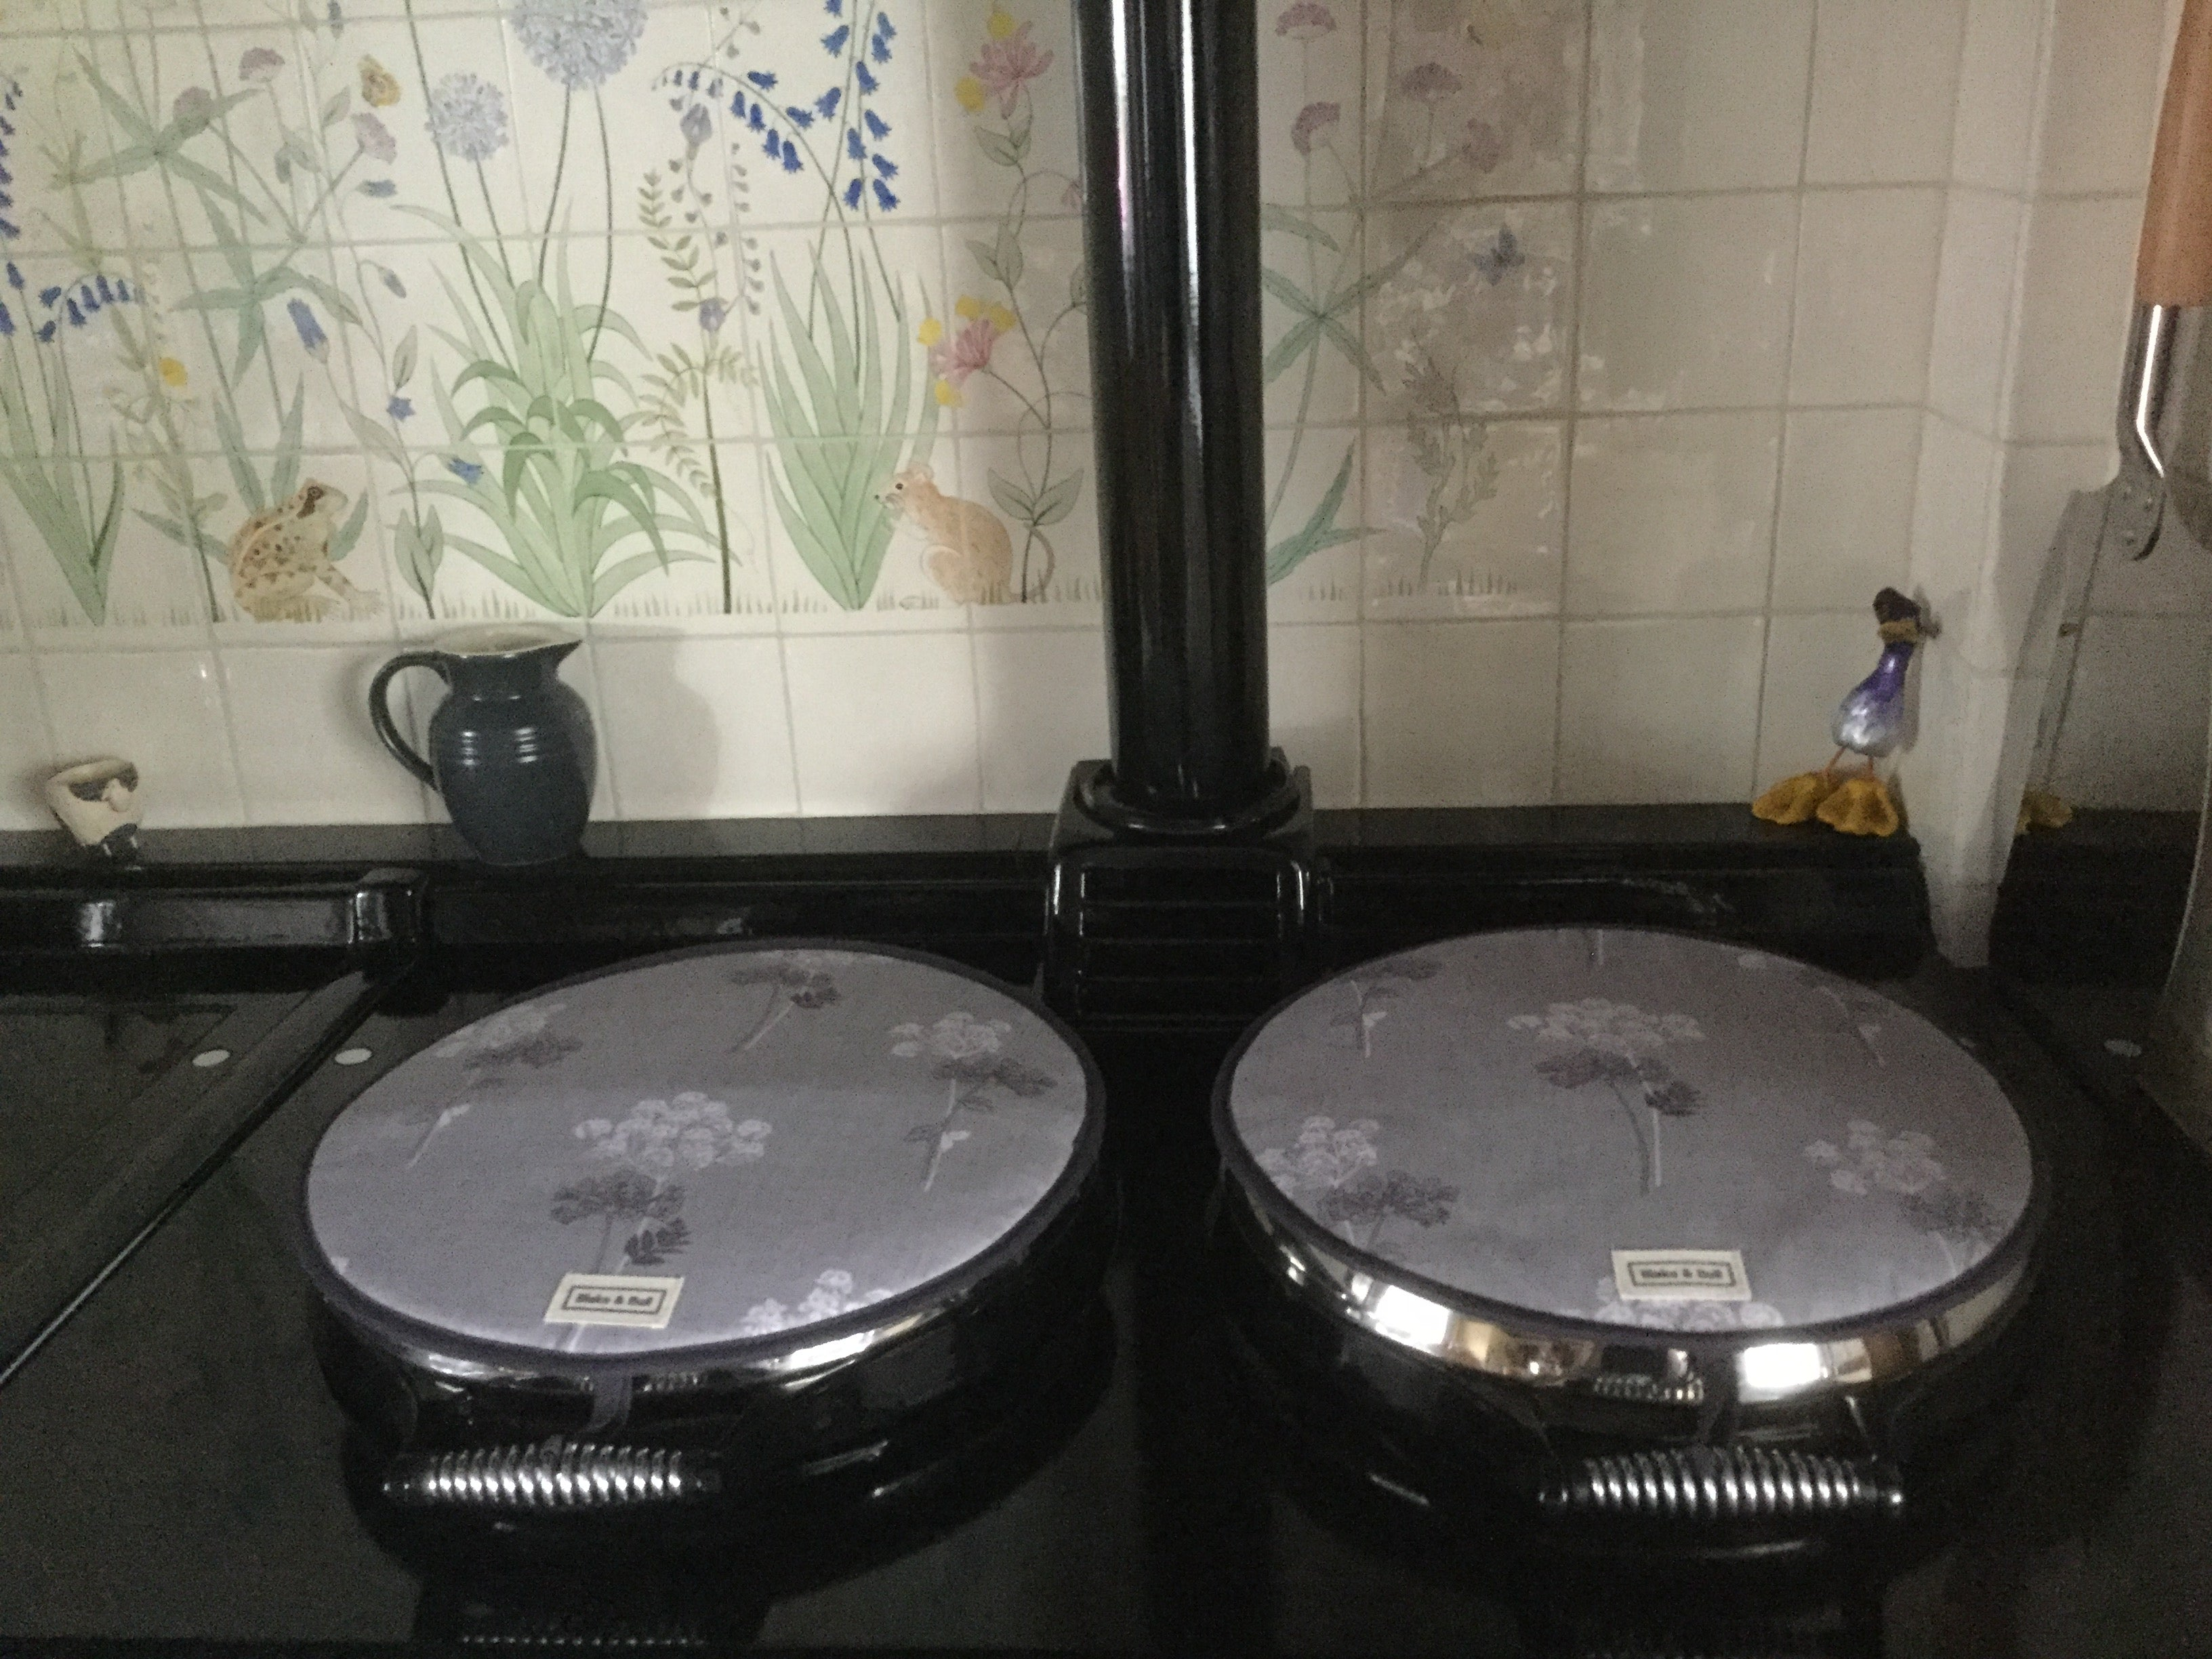 Cow parsley hob covers on Aga range cooker